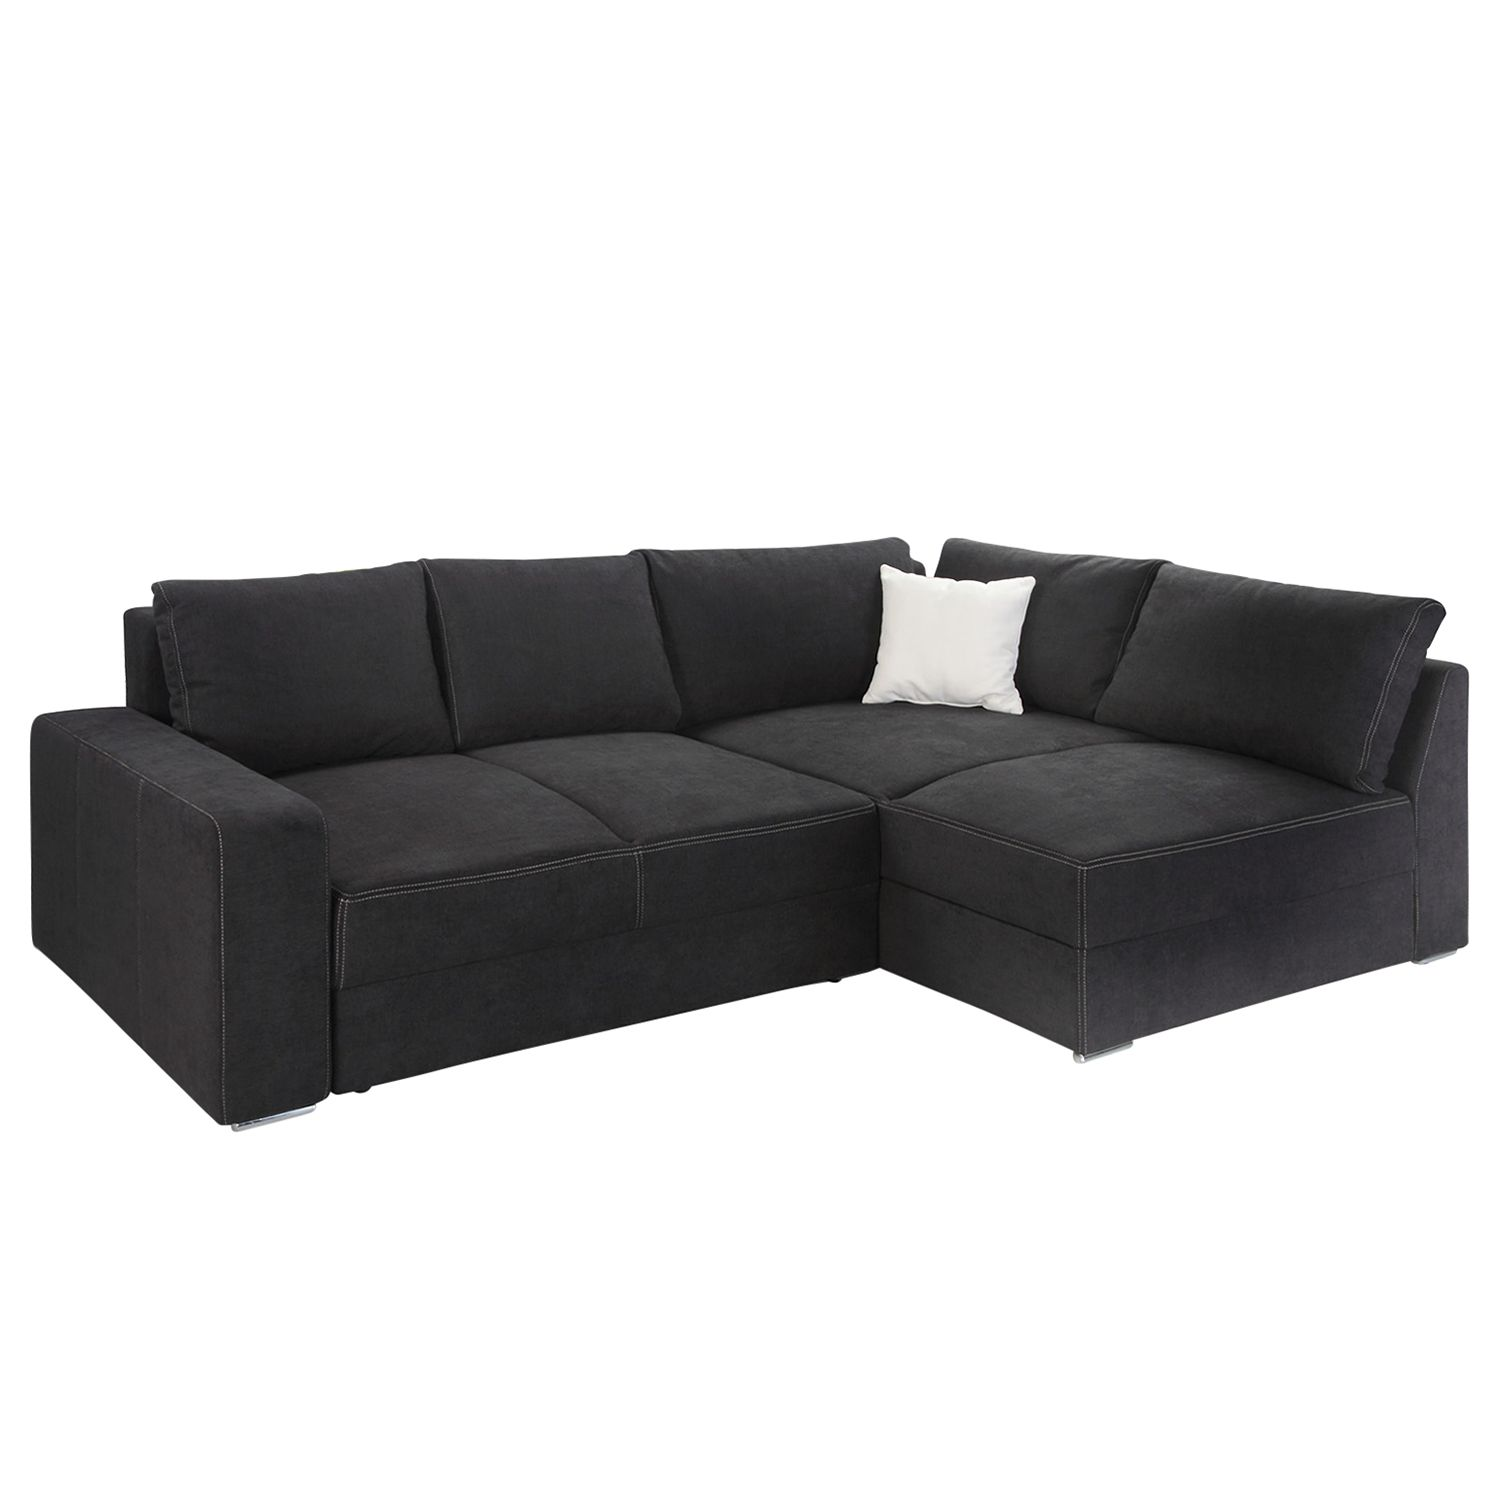 ecksofa mit schlaffunktion f r kleine r ume die neuesten. Black Bedroom Furniture Sets. Home Design Ideas